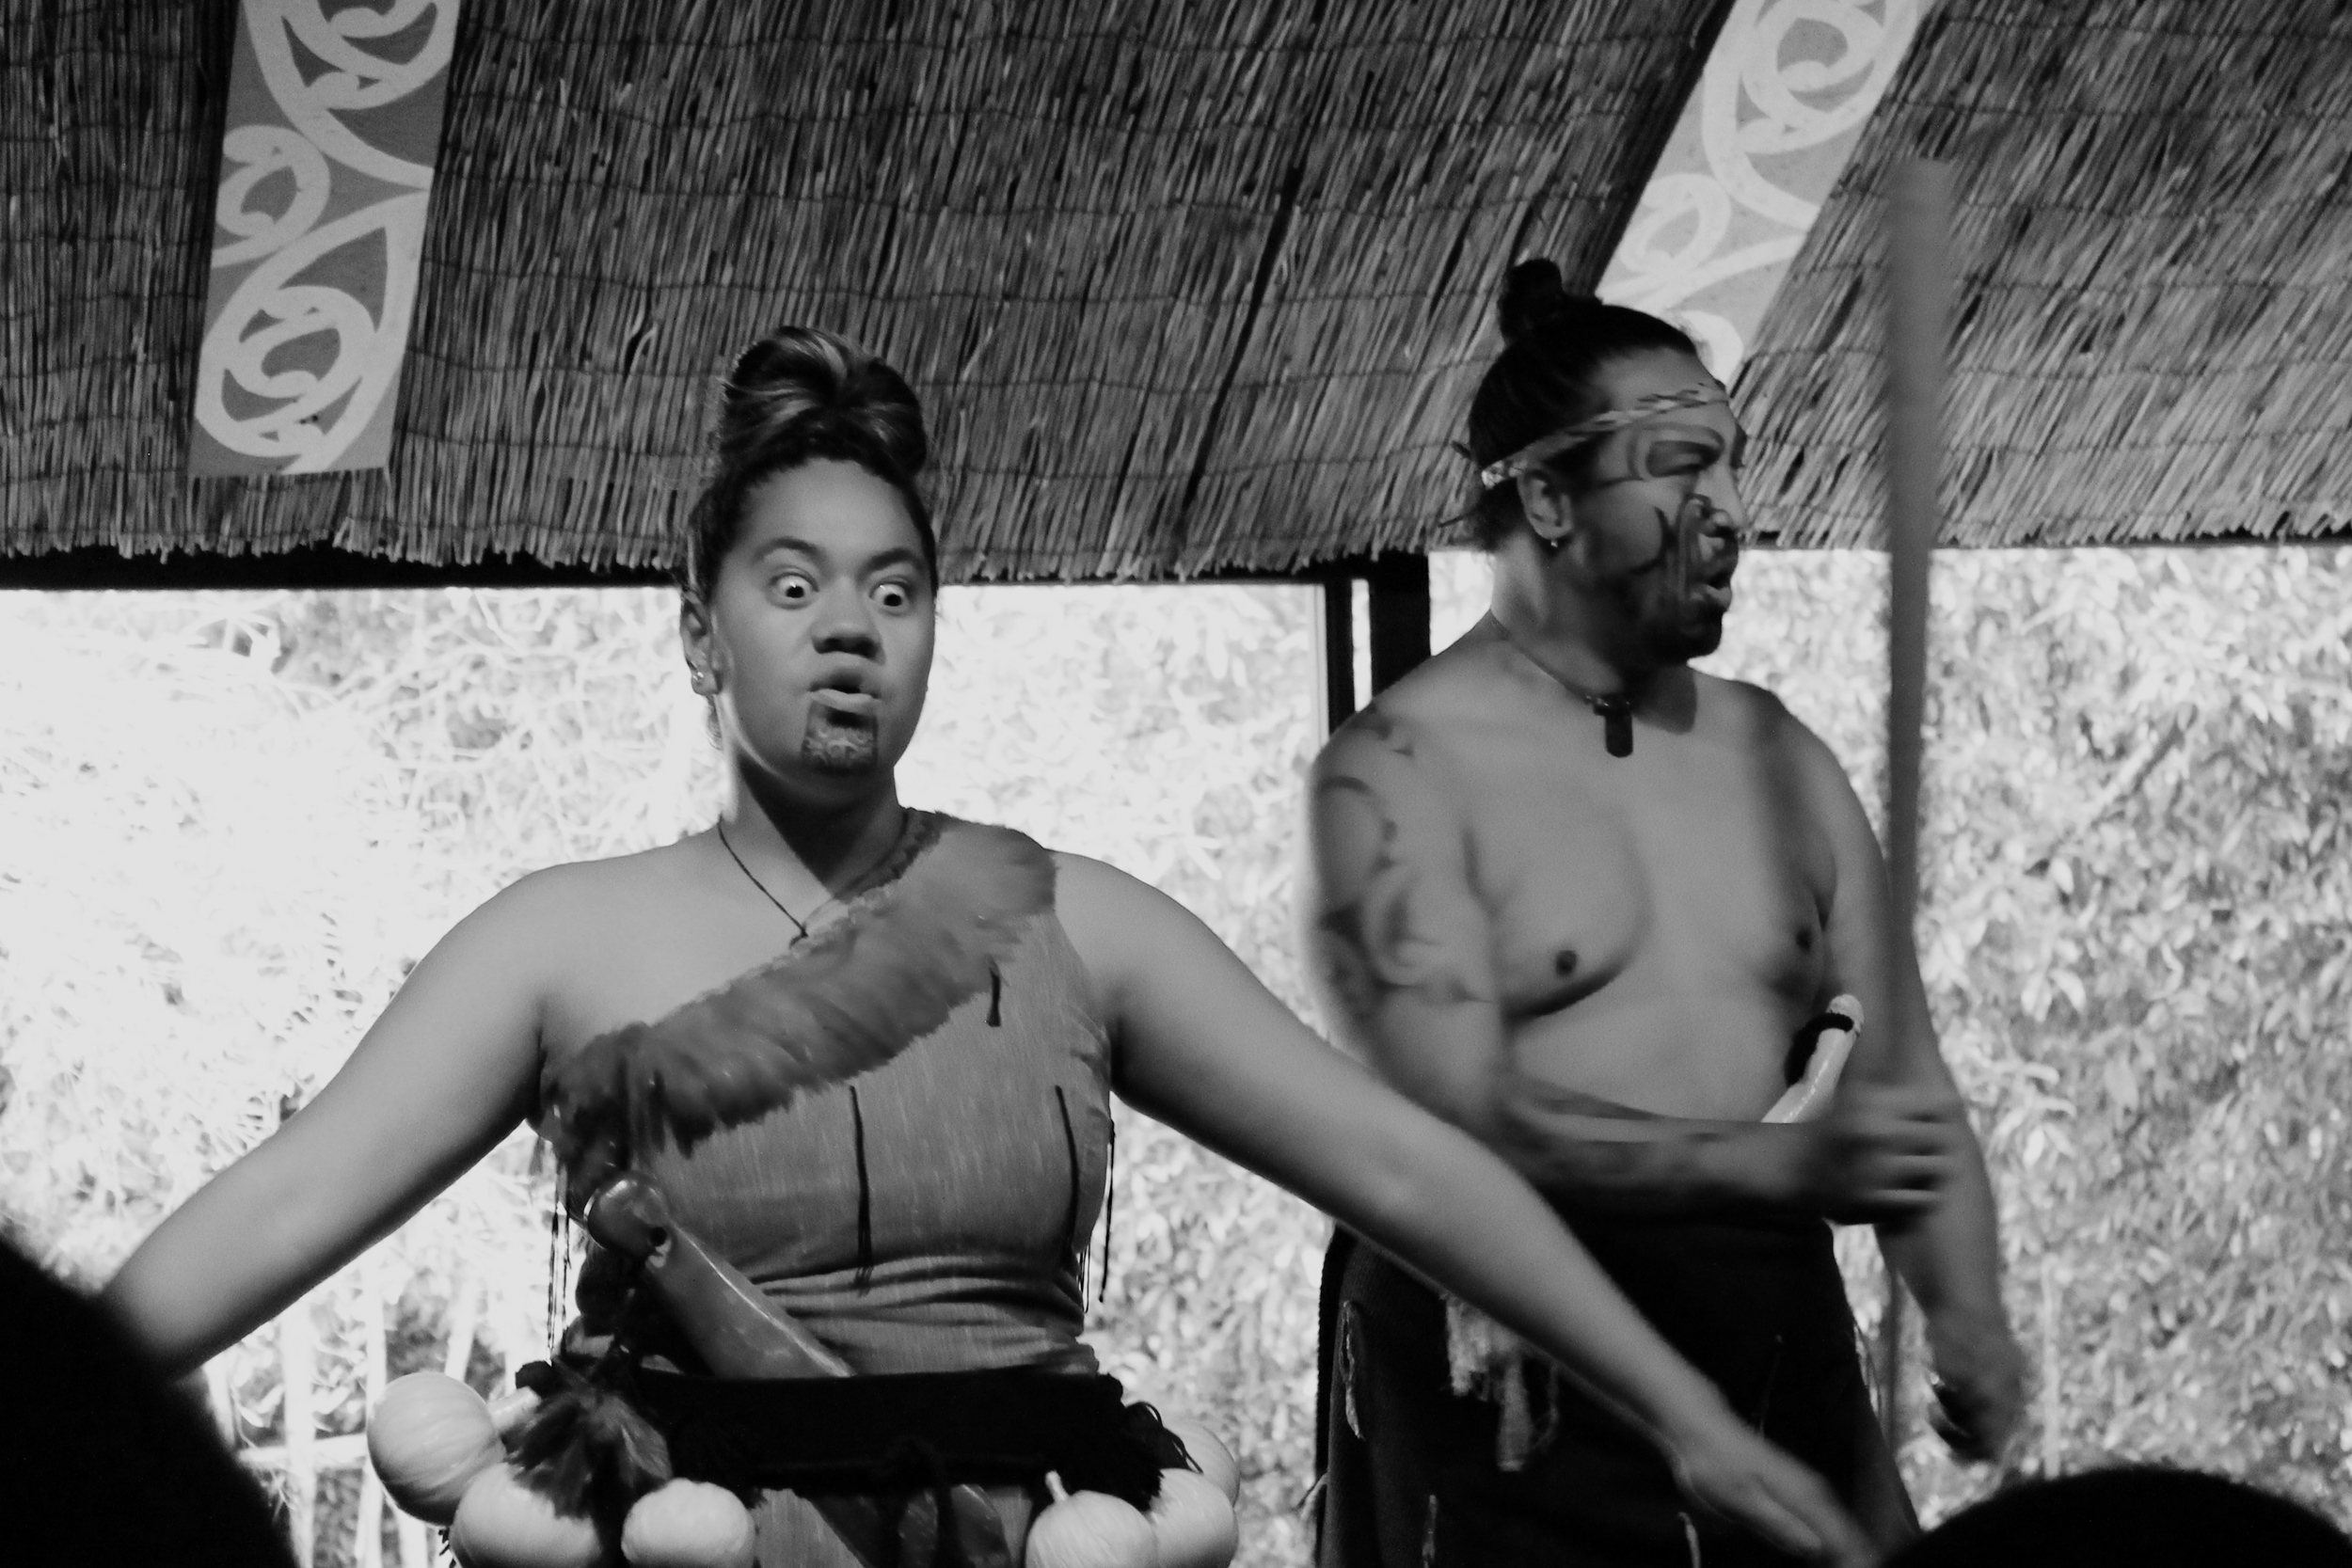 When doing theHaka warrior dance, you make your eyes wide,stick out your tongue and yell to intimidate others. I plan to use this method if I find myself corneredin a dark alley way or on a bad date.